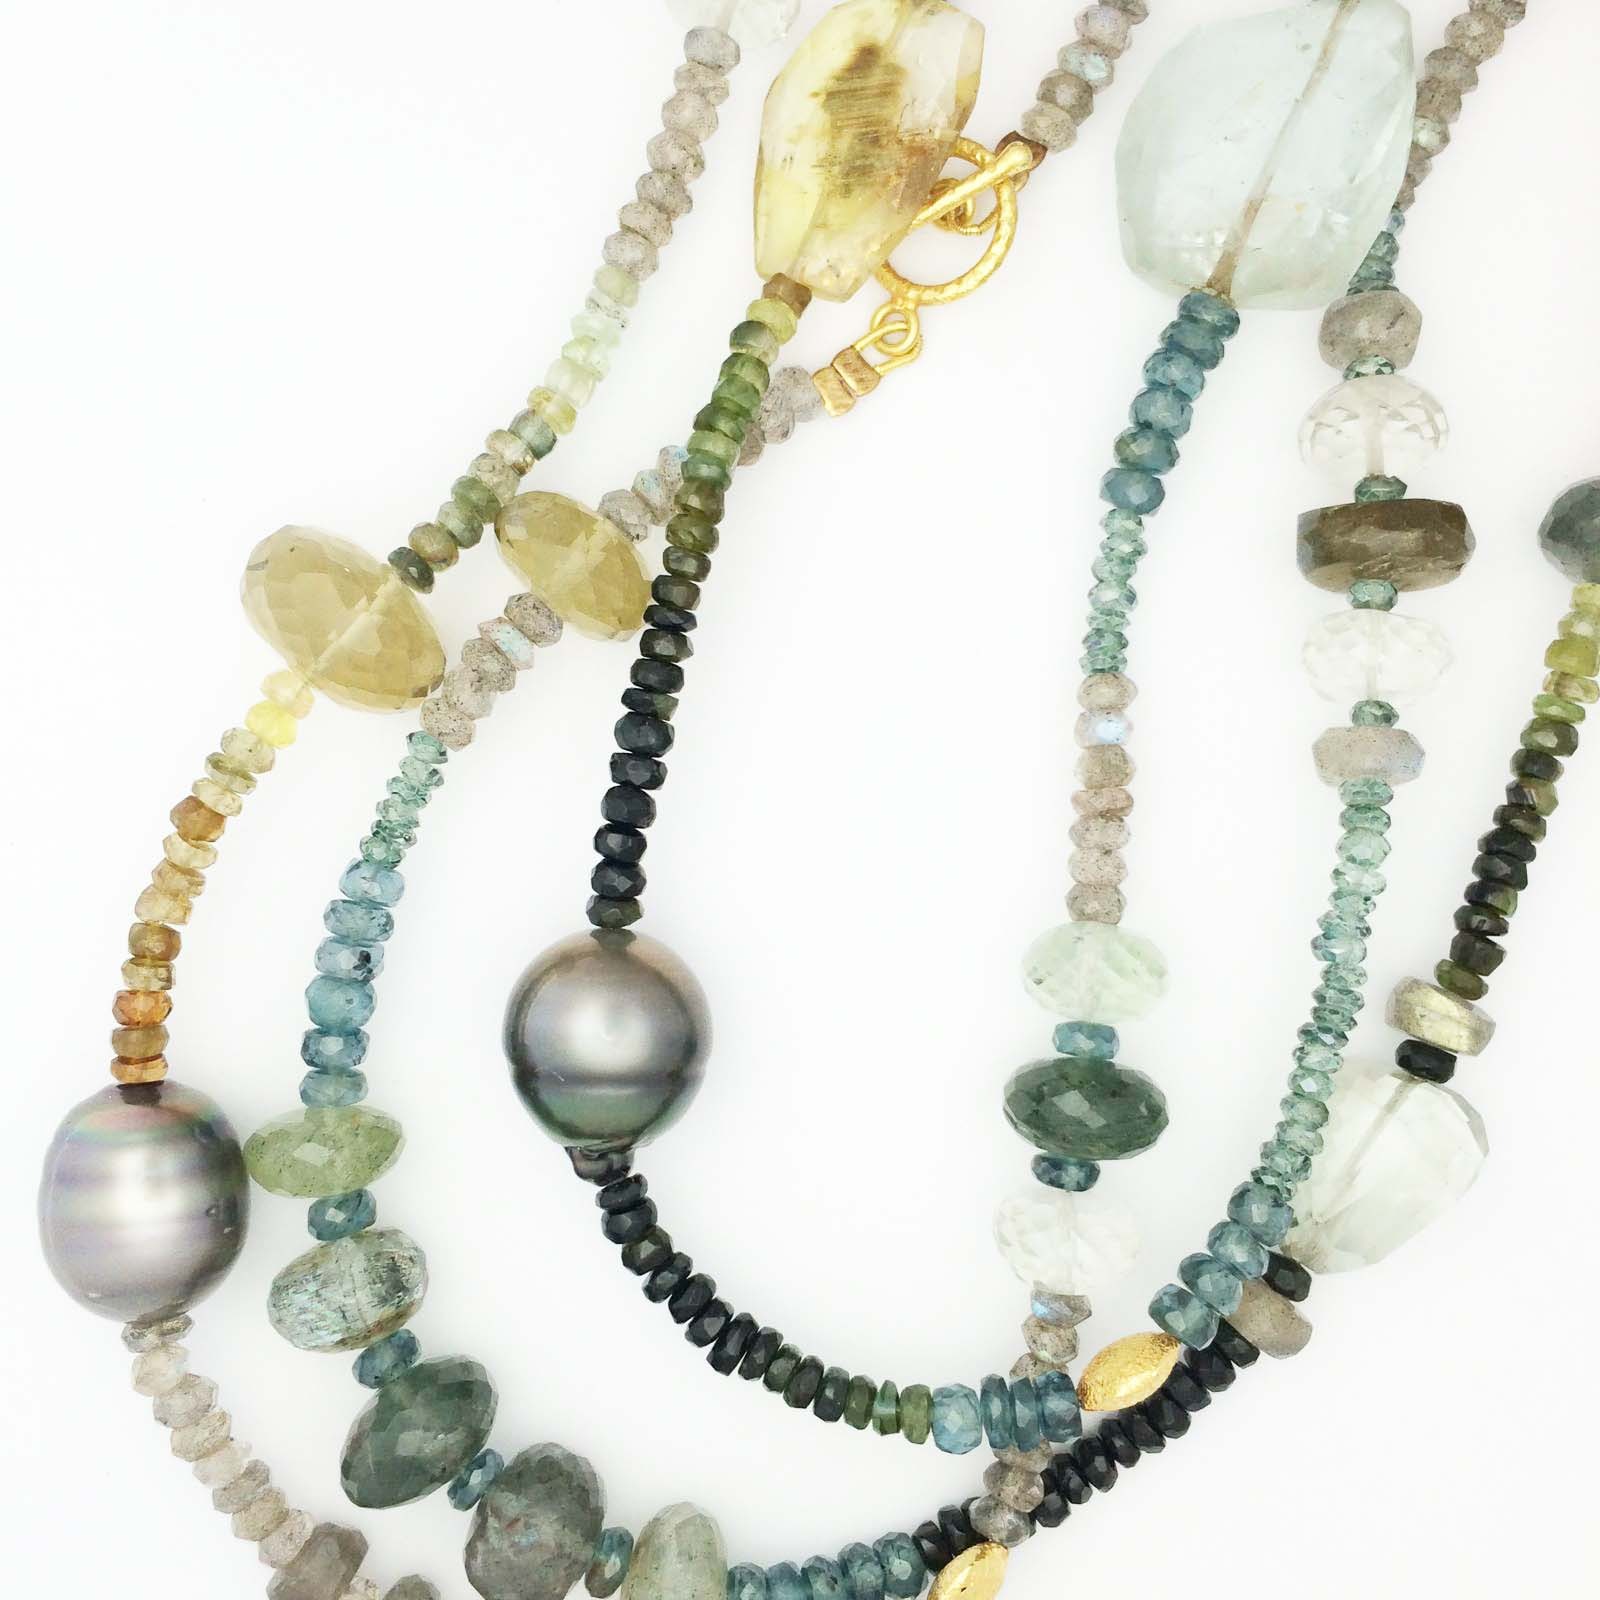 necklace add a semi precious meredith jackson wishlist charlotte jewellery to product loading stone